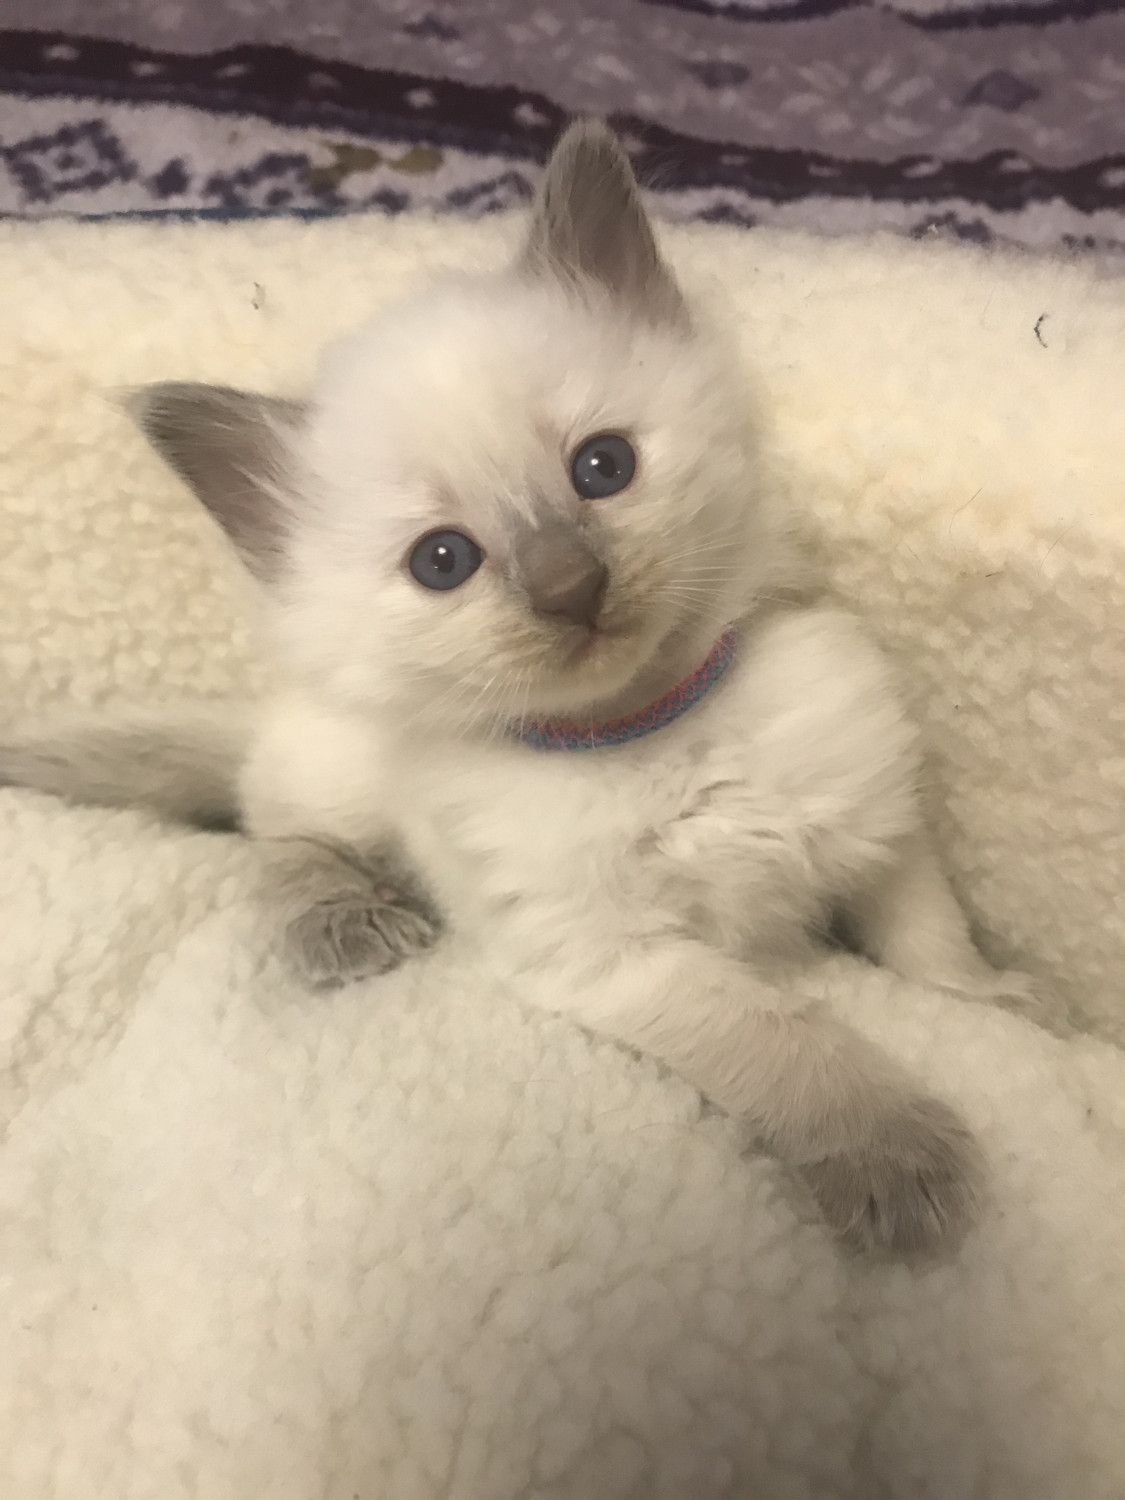 Balinese Cats For Sale Ponchatoula La In 2020 Balinese Cat Cats For Sale Cute Boxer Puppies